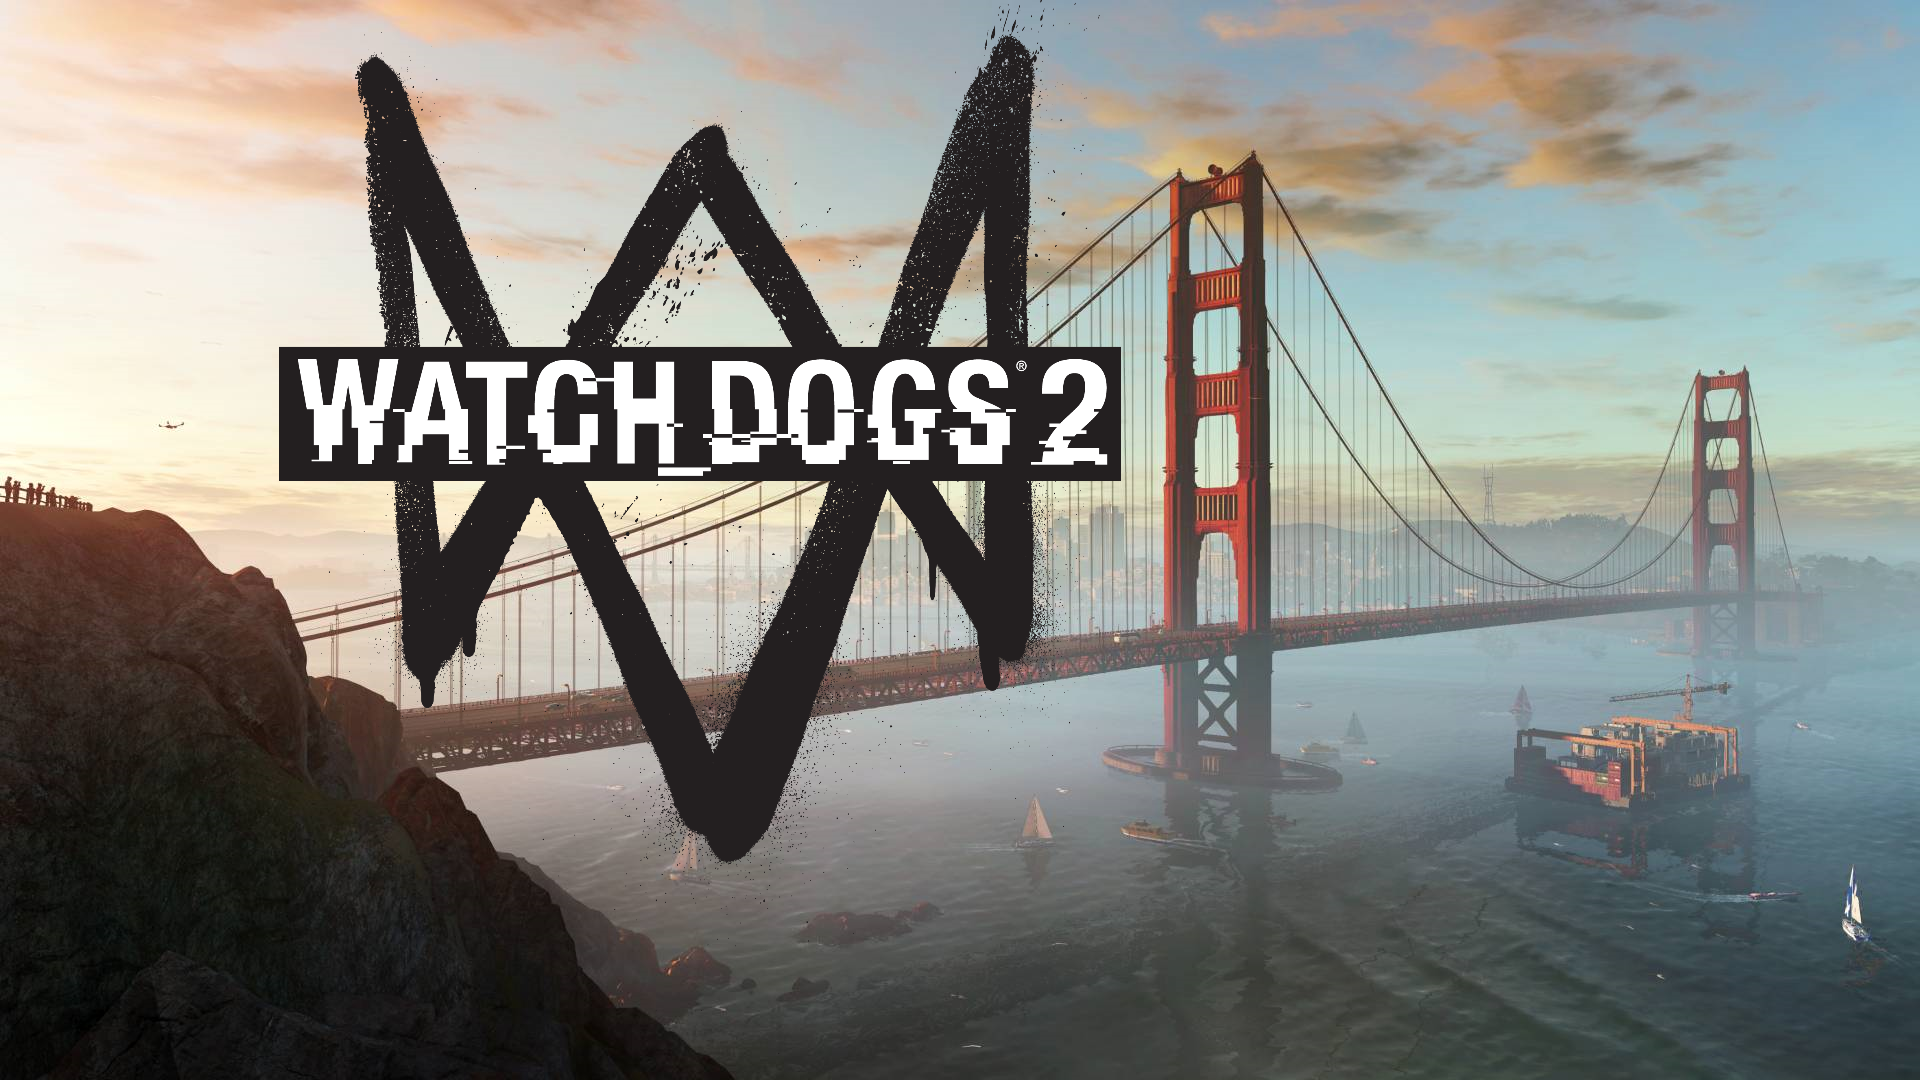 watch dogs live wallpaper - photo #34